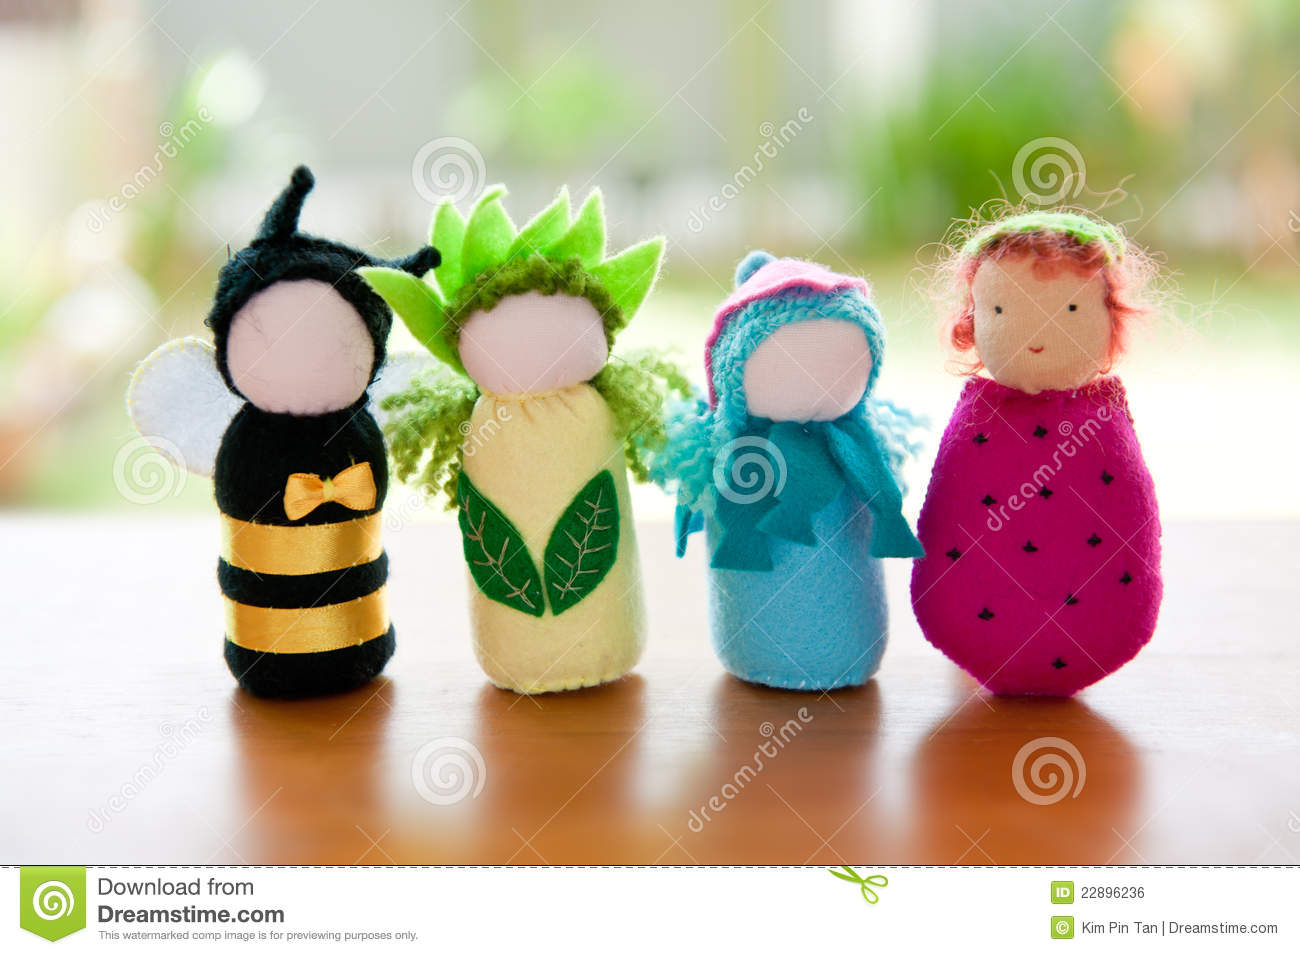 Handmade Waldorf Soft Toys Stock Photo Image 22896236